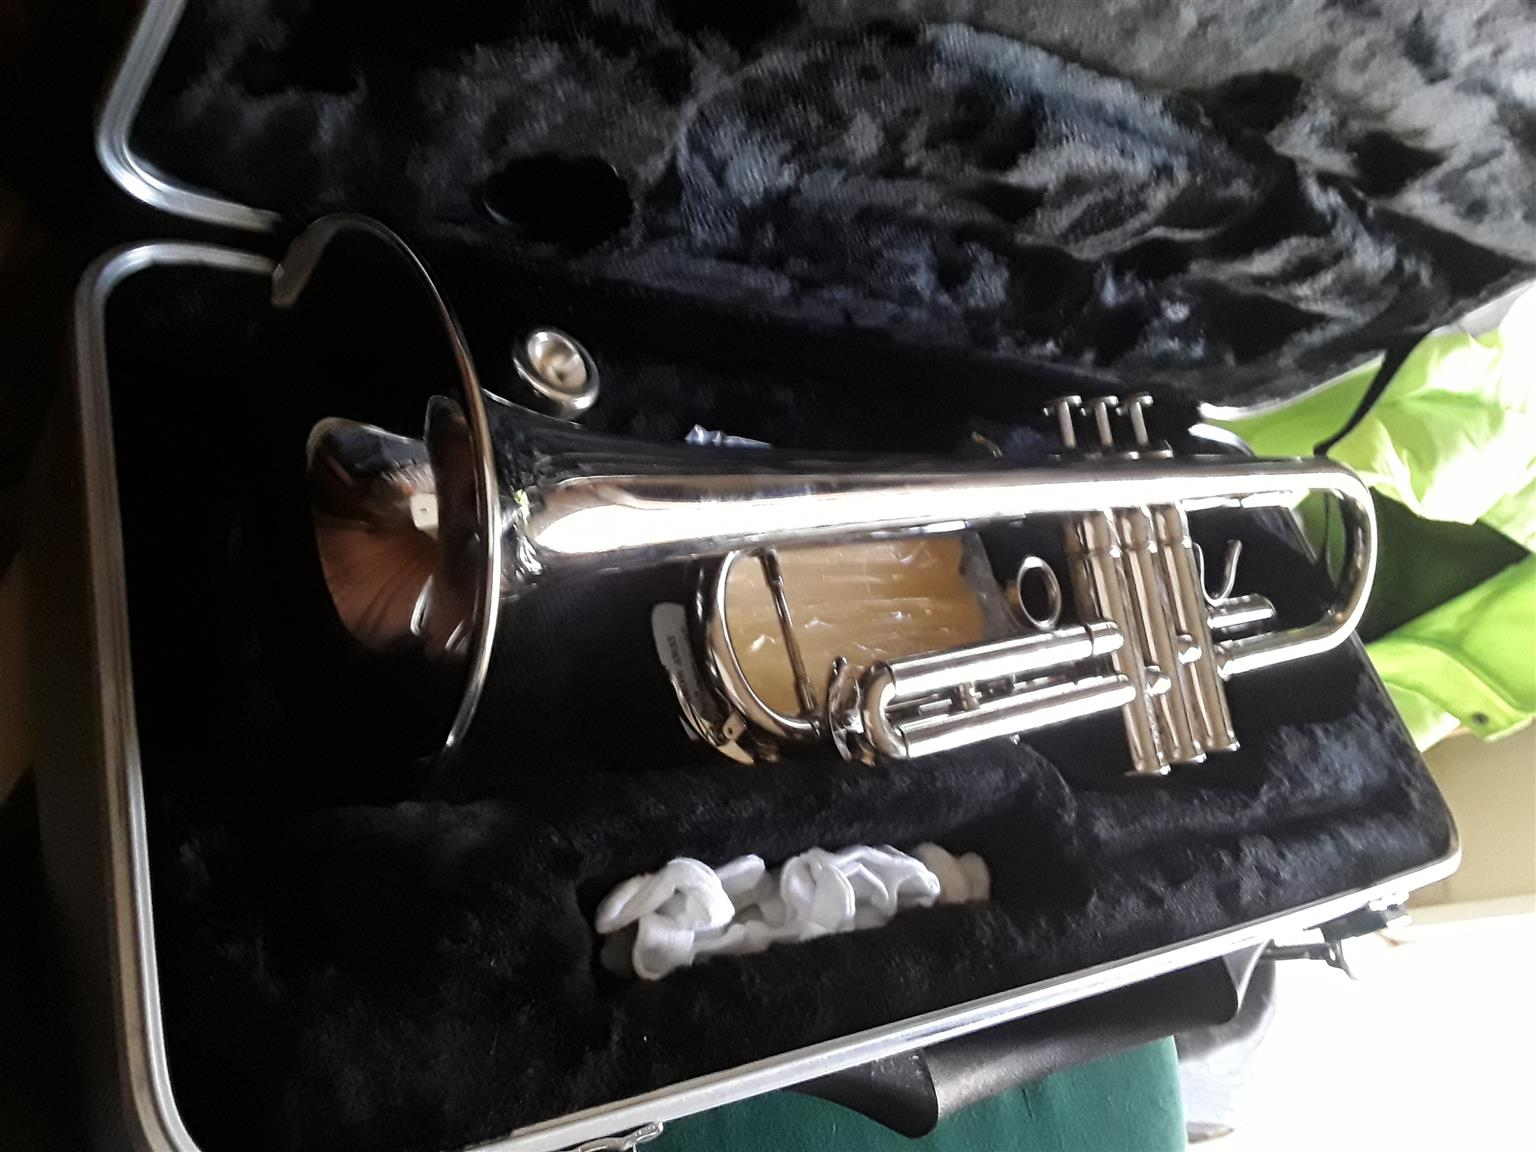 SantaFe chrome Trumpet to swop or for sale